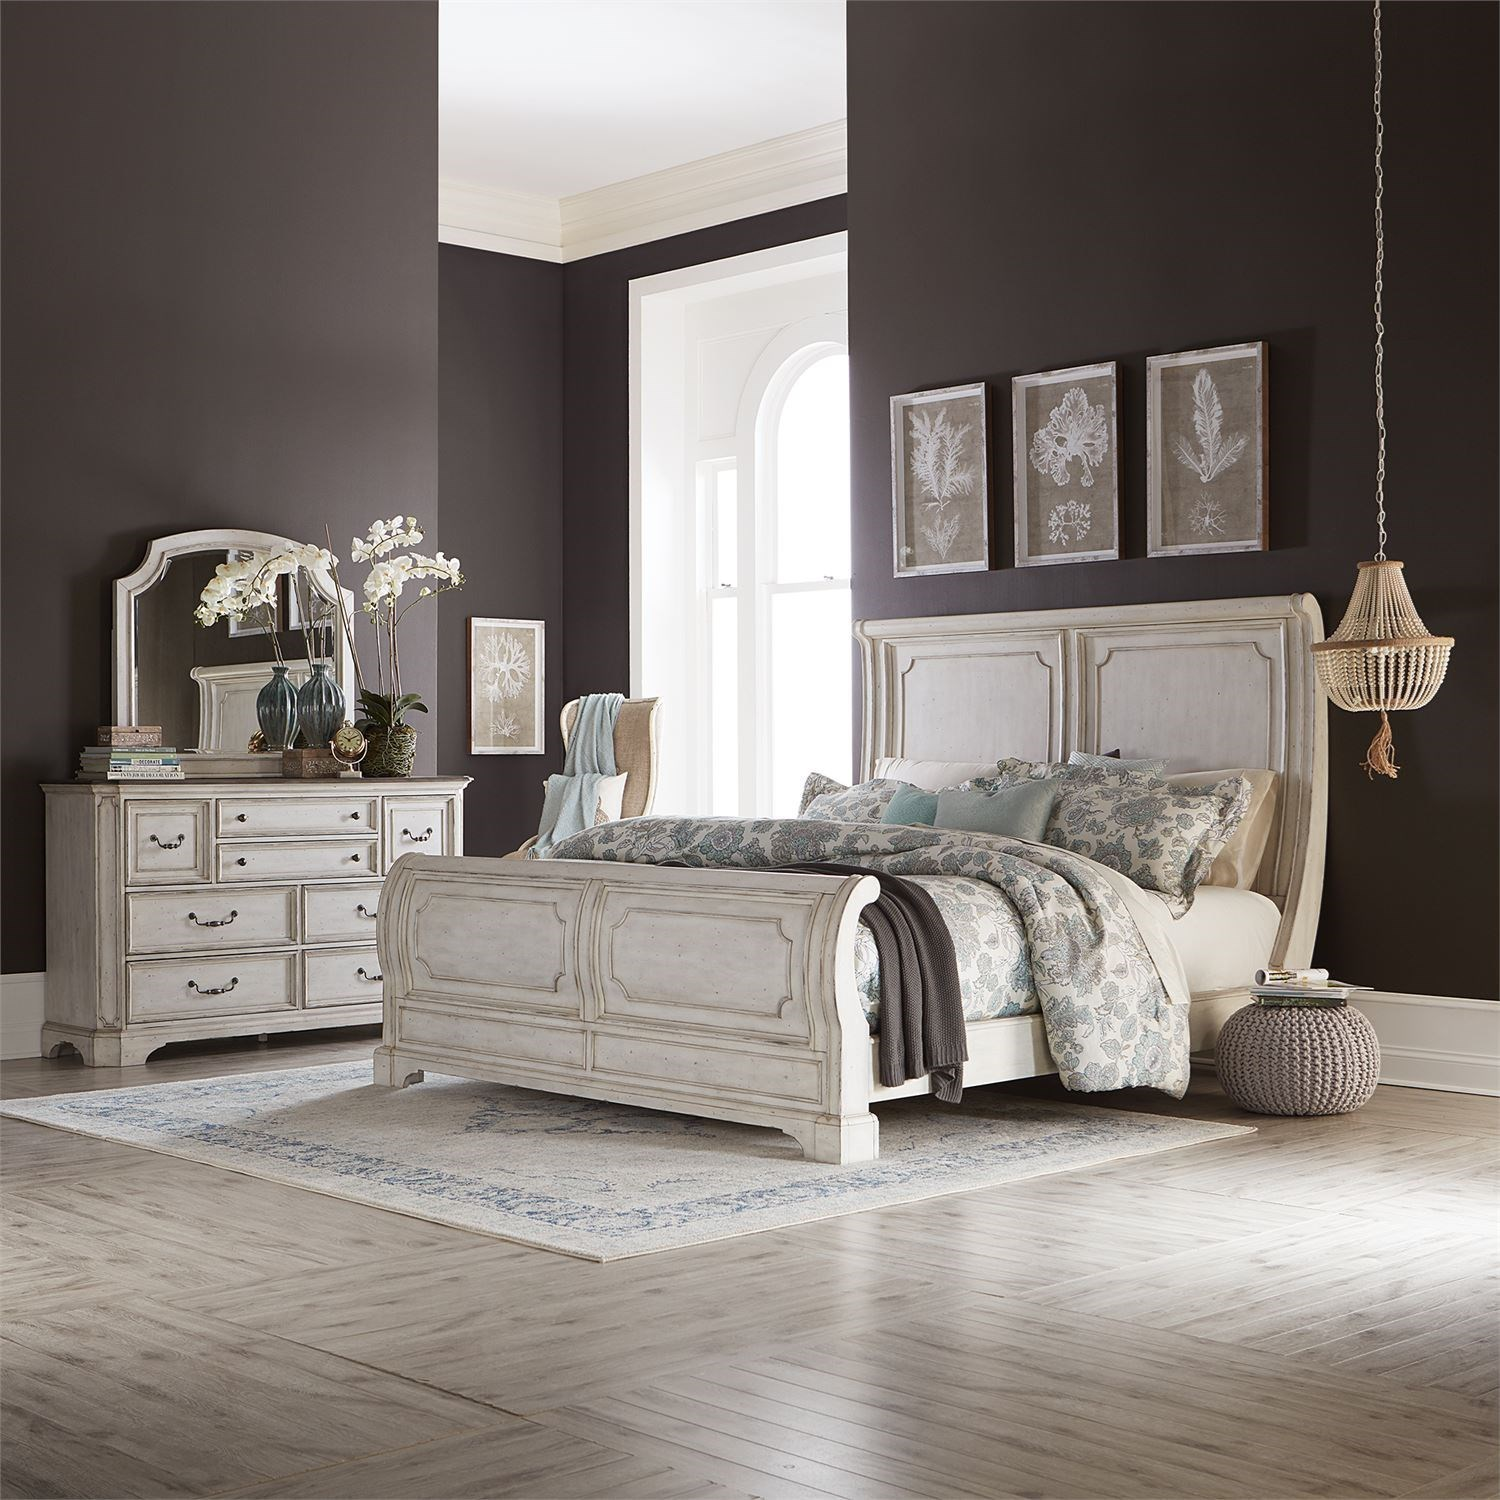 Abbey Road King Bedroom Group by Liberty Furniture at Northeast Factory Direct